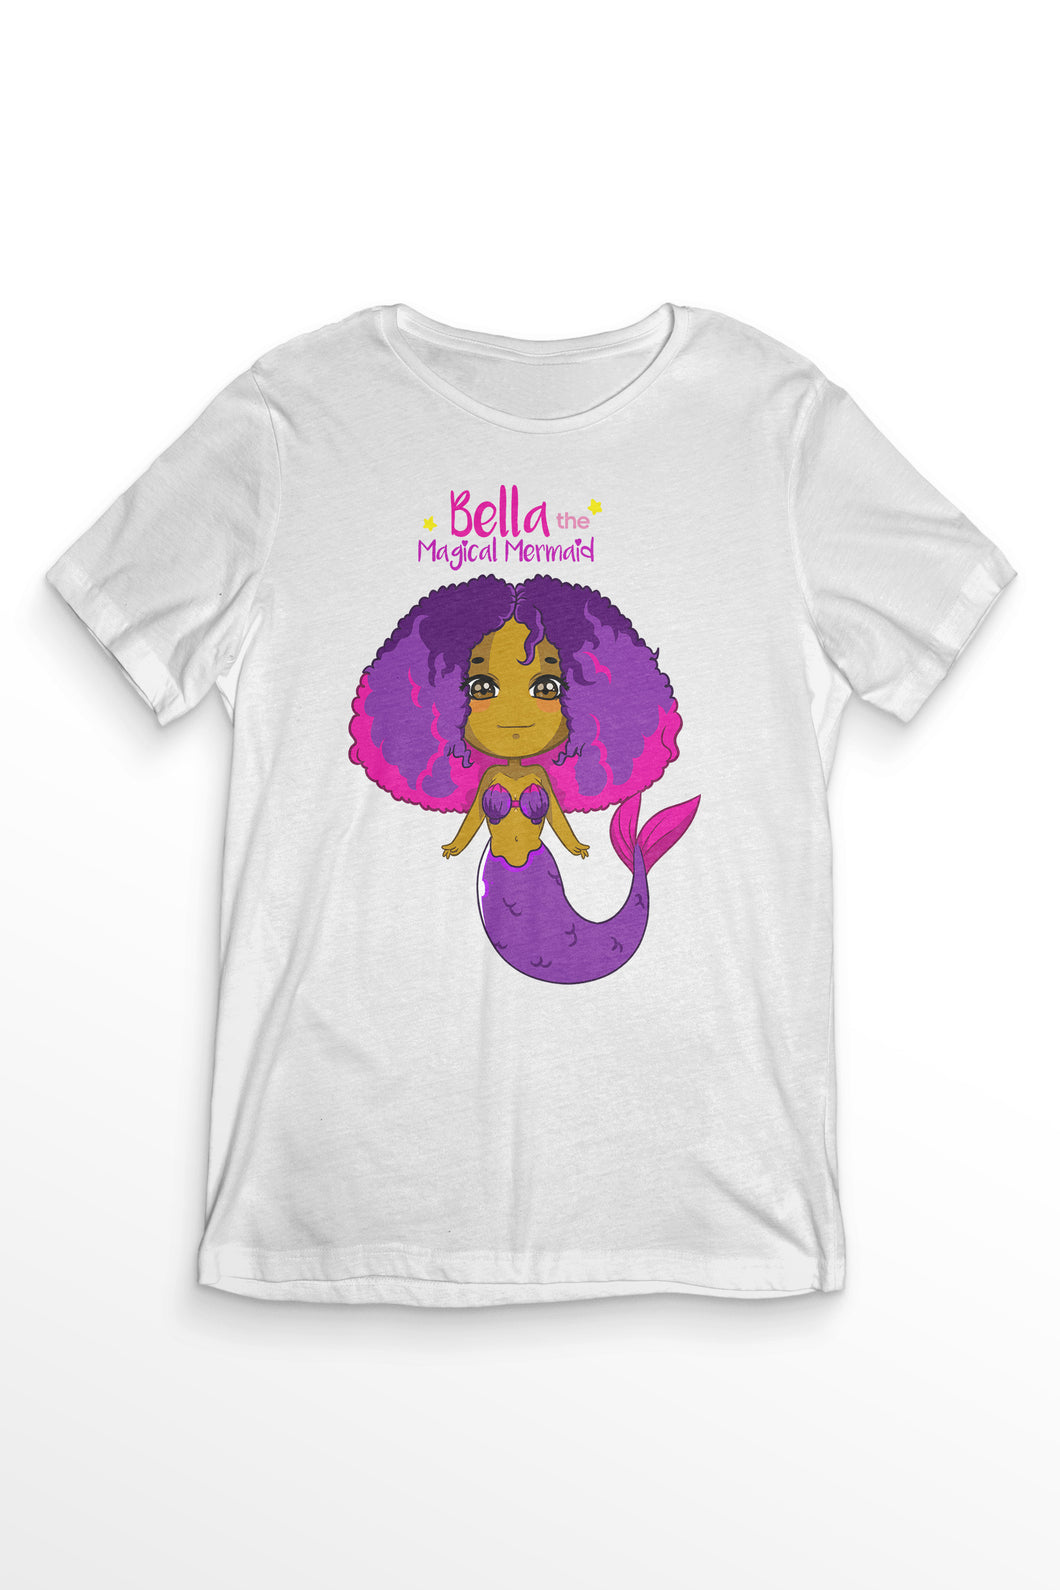 Bella The Magical Mermaid - Short Sleeve Tshirt